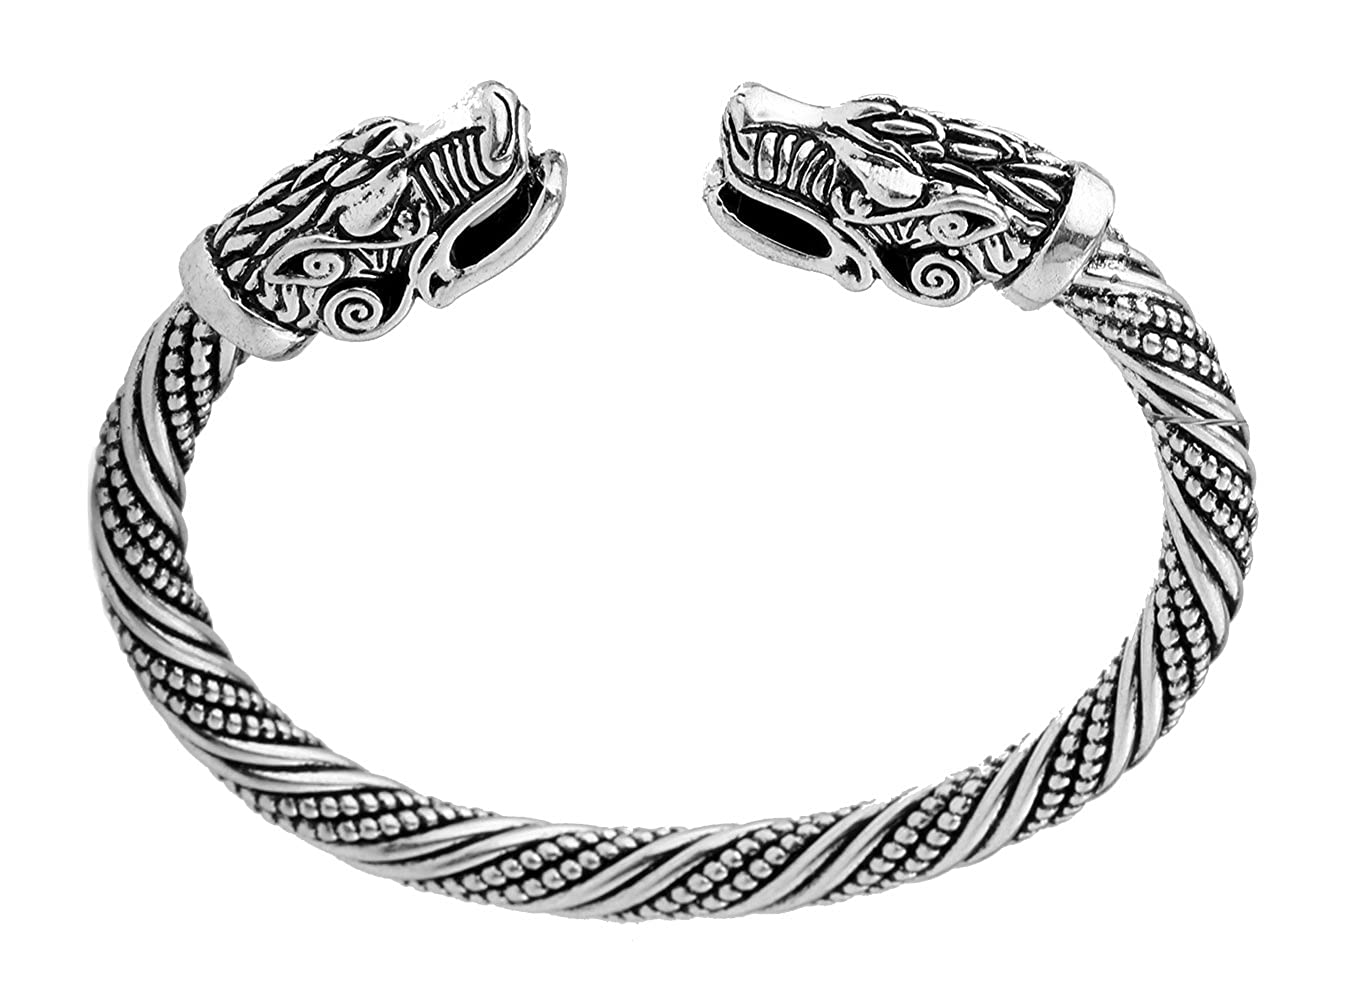 Vintage Viking Double Dragon Head Alloy Jewelry Celtic Knot Cuff Boho Animal Bracelet for Men/Women YiYou B078LZRVVV_US